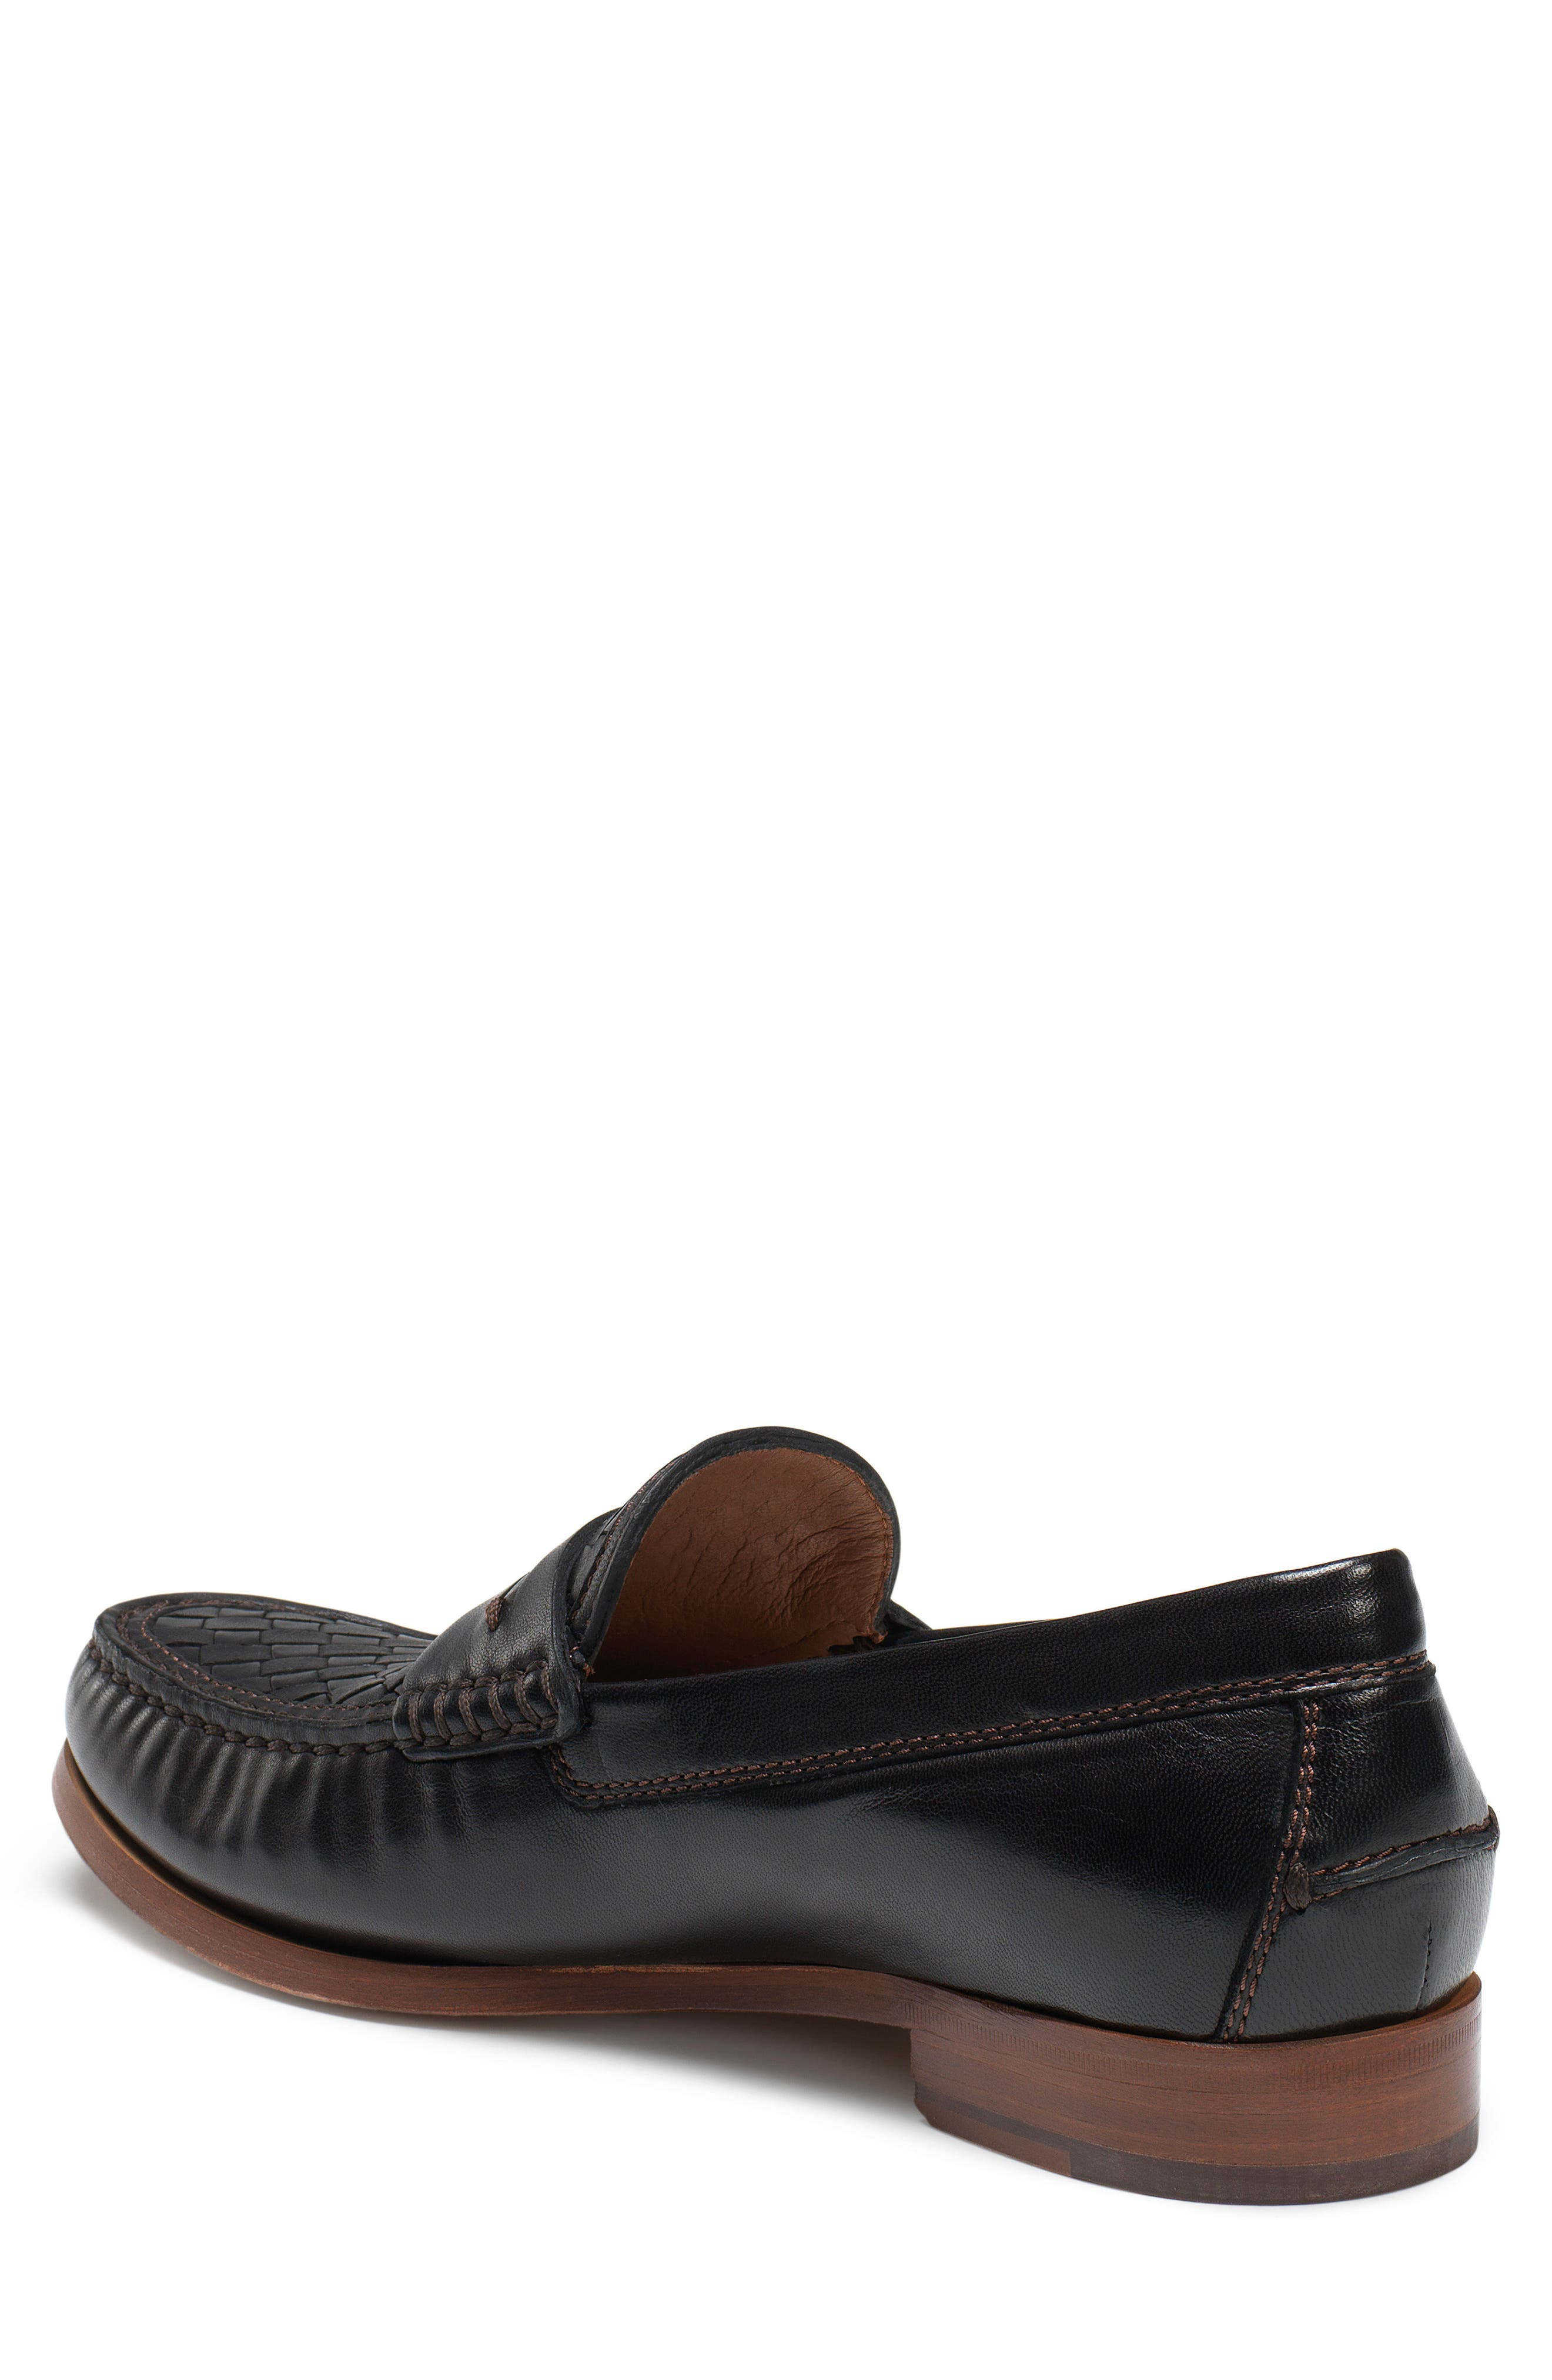 Slade Water Resistant Woven Penny Loafer,                             Alternate thumbnail 2, color,                             Black Leather